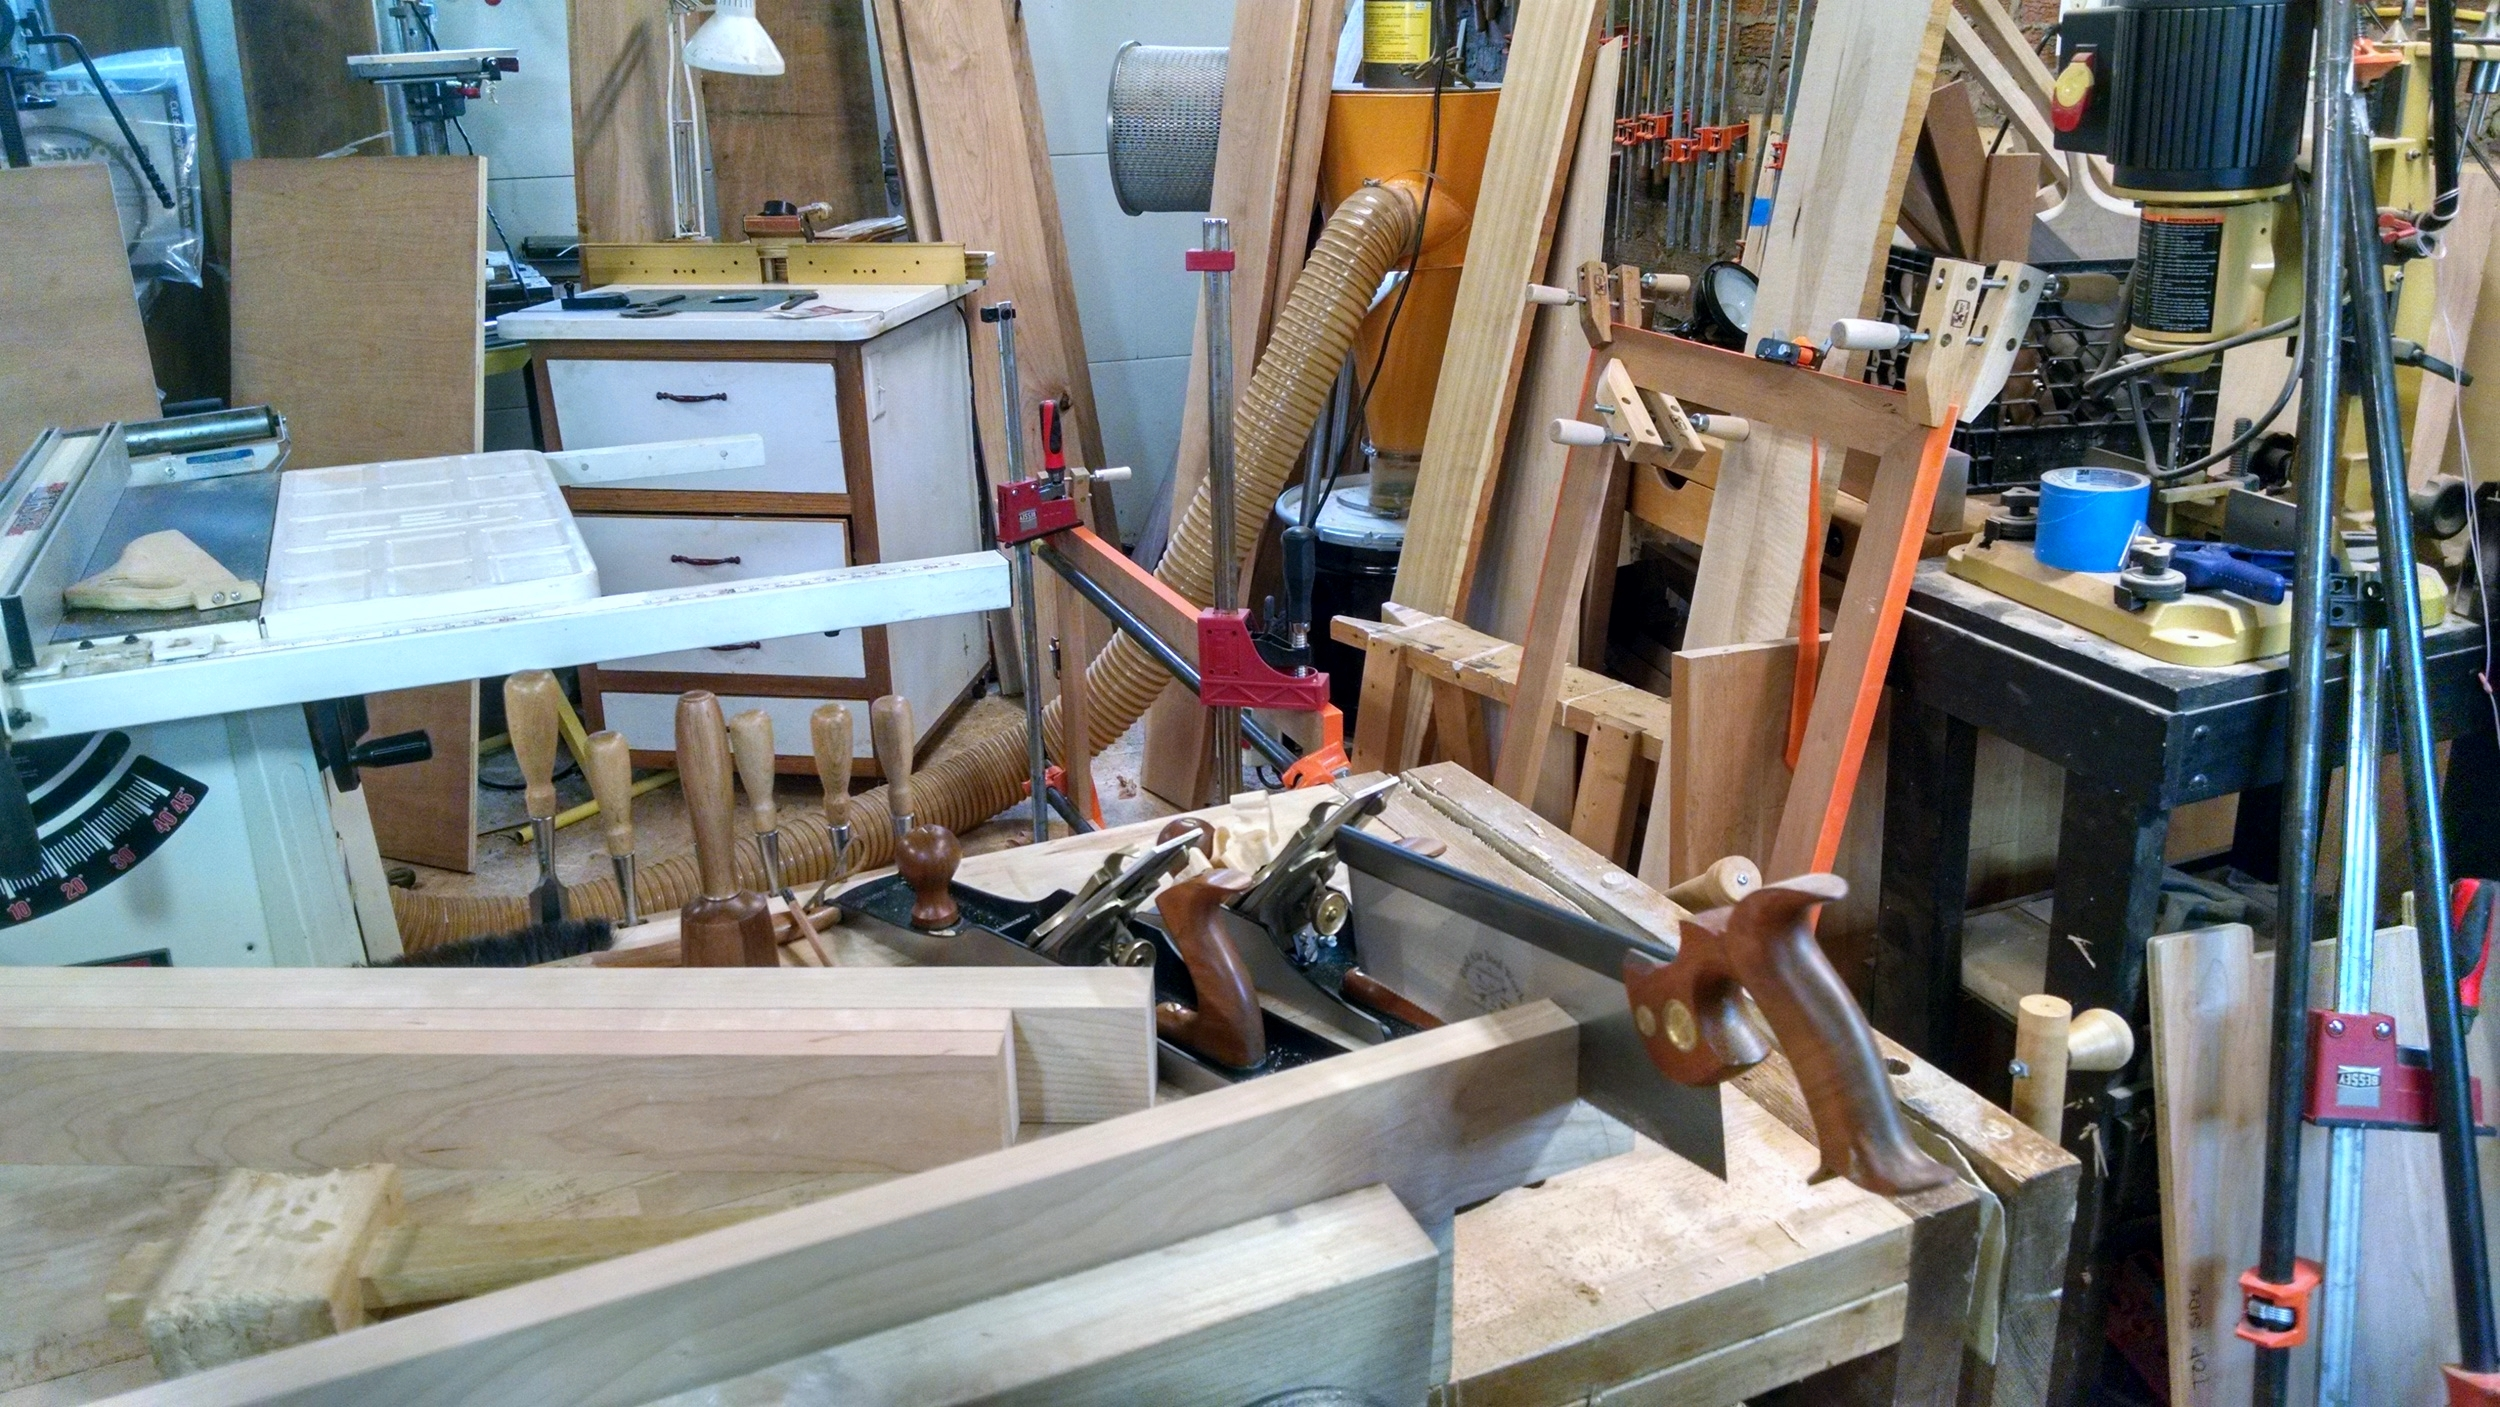 I've moved to hand tools here...cutting joinery for base pieces with my favorite BadAxe saw